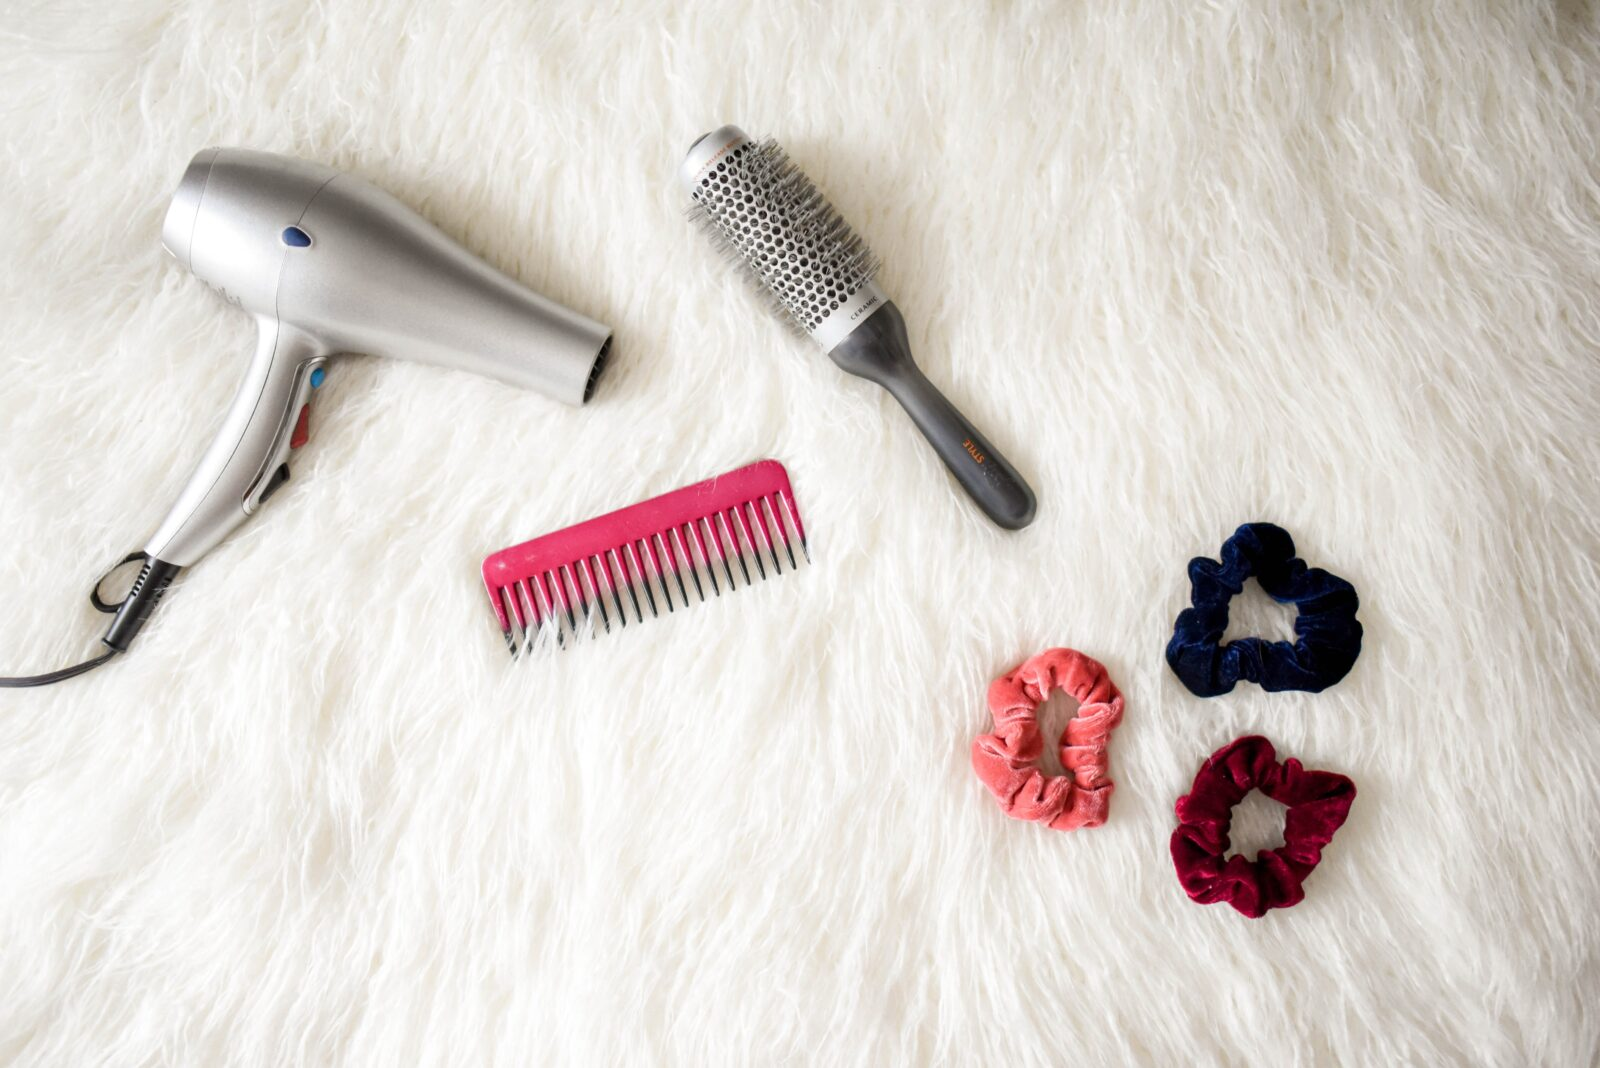 Hair dryer, combs, brushes and scrunchies